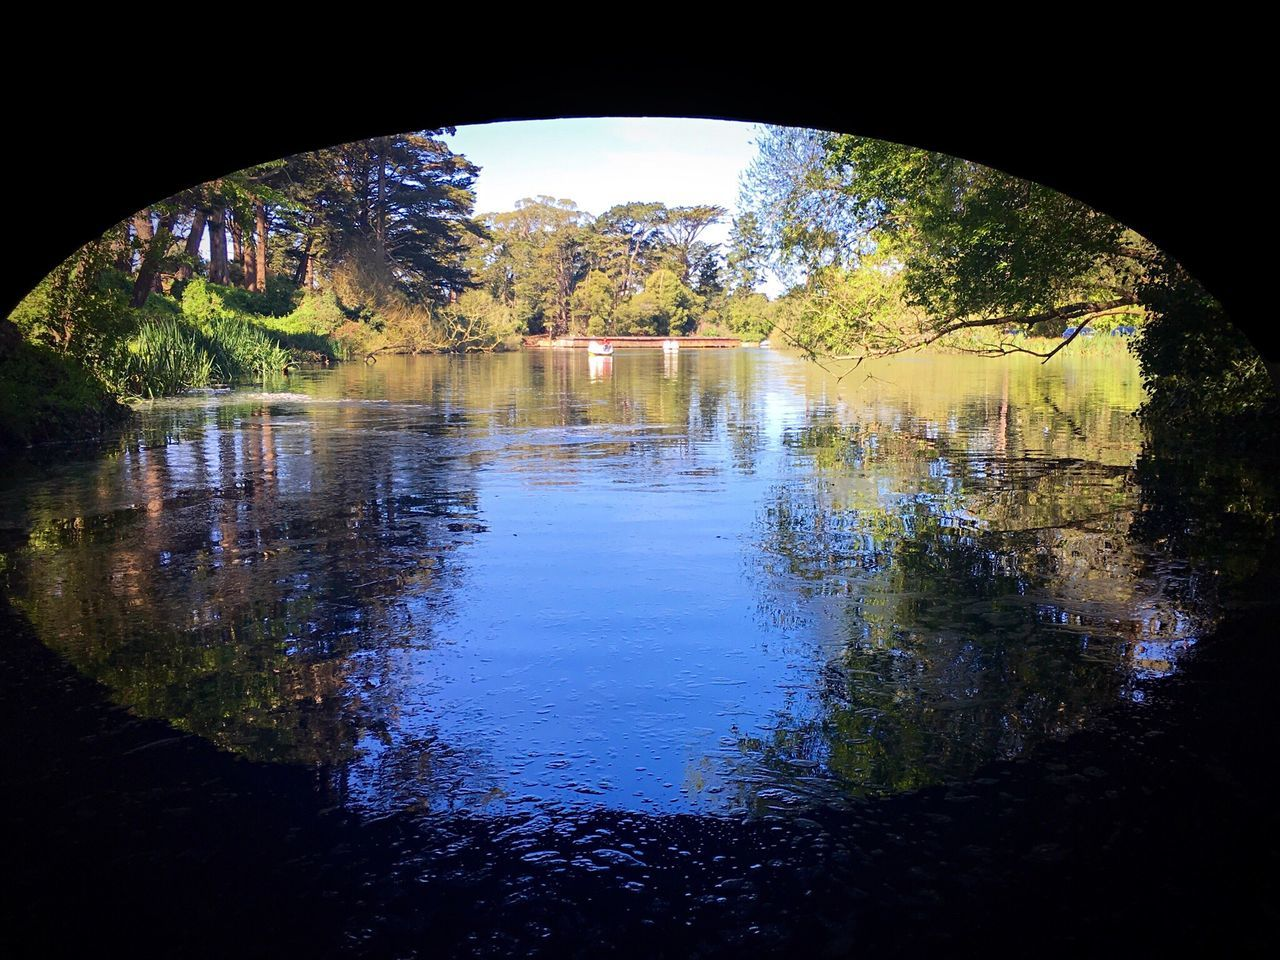 reflection, water, arch, day, tree, no people, nature, tranquility, built structure, outdoors, architecture, beauty in nature, under, sky